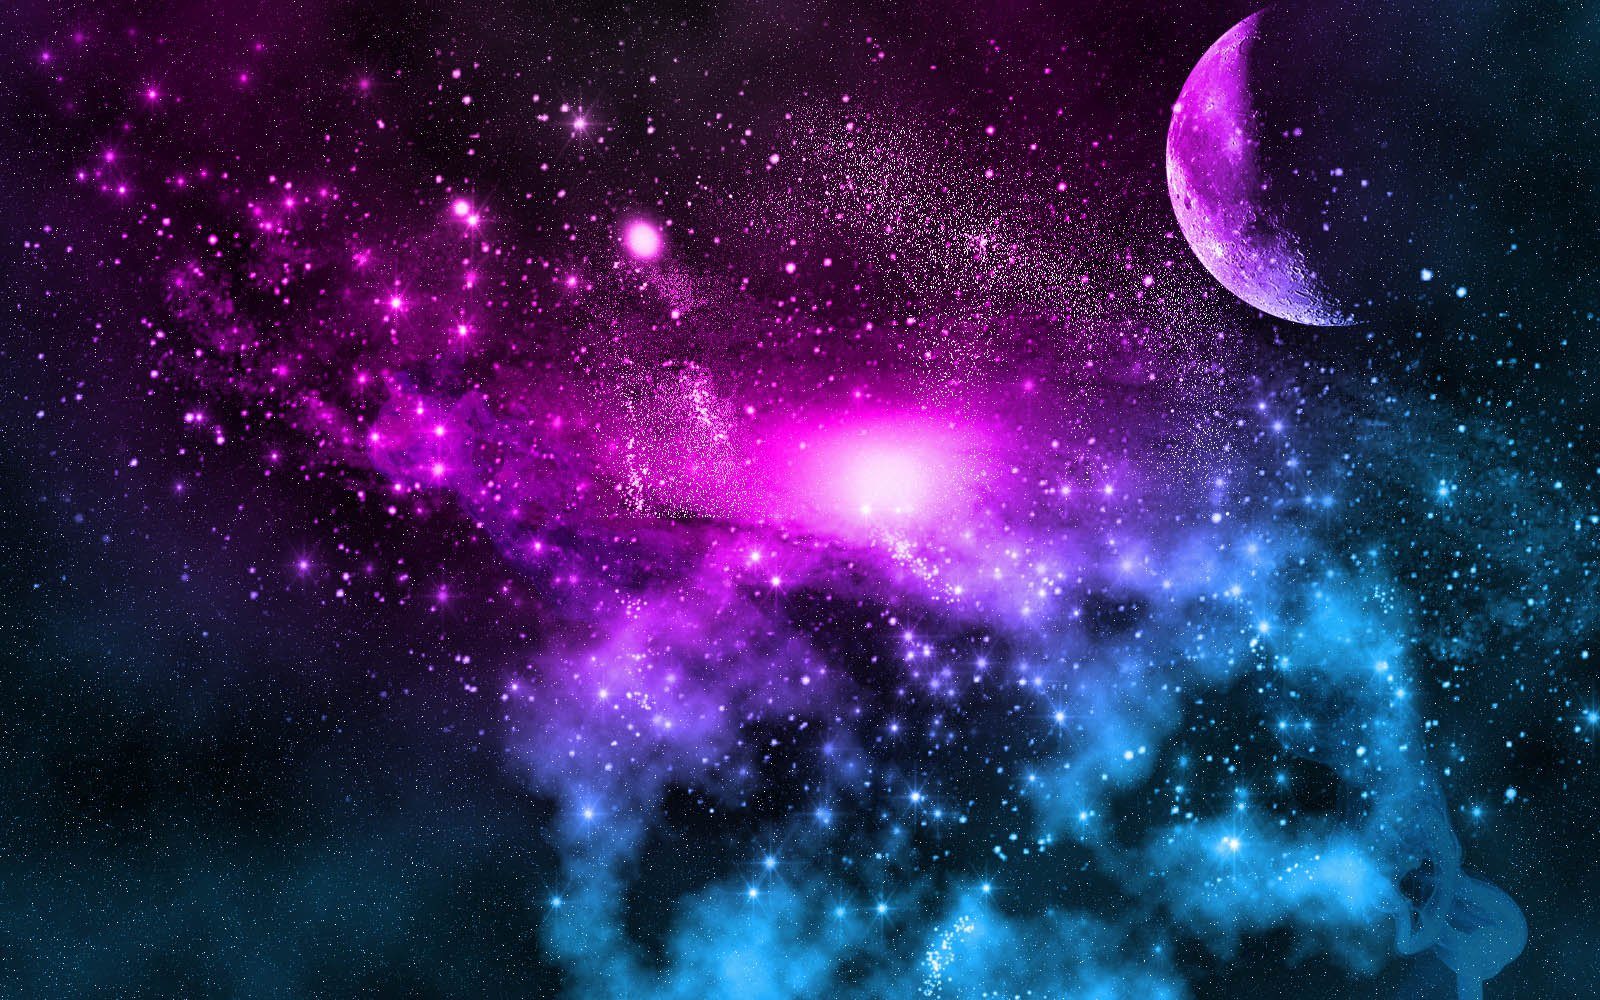 Galaxy See This Picture Wallpaper 1600x1000 Full HD Wallpapers 1600x1000